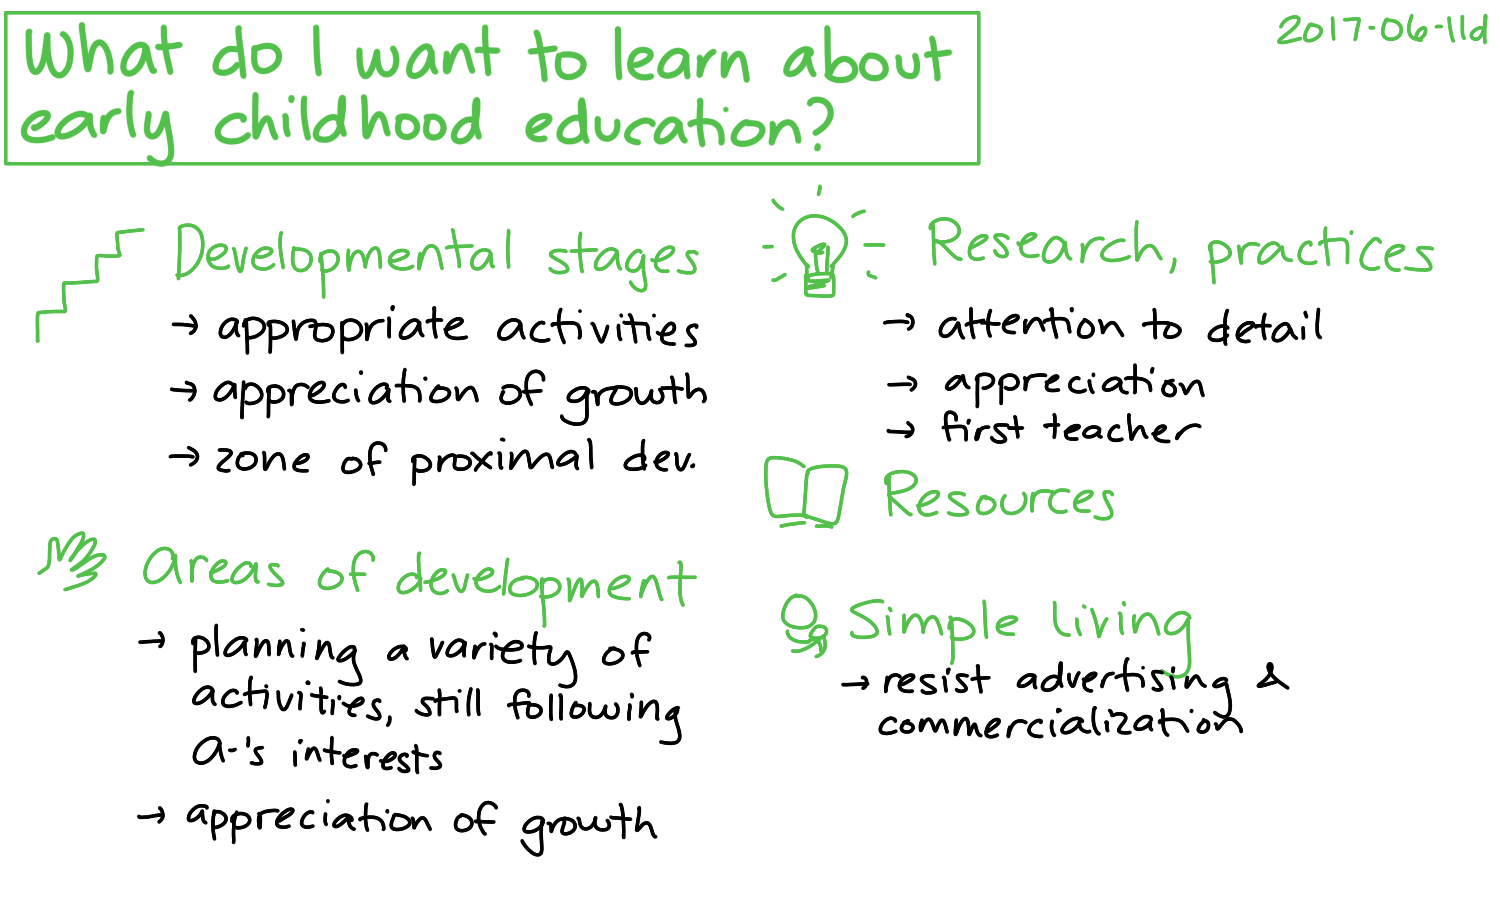 2017-06-11d What do I want to learn about early childhood education #parenting #ece.png